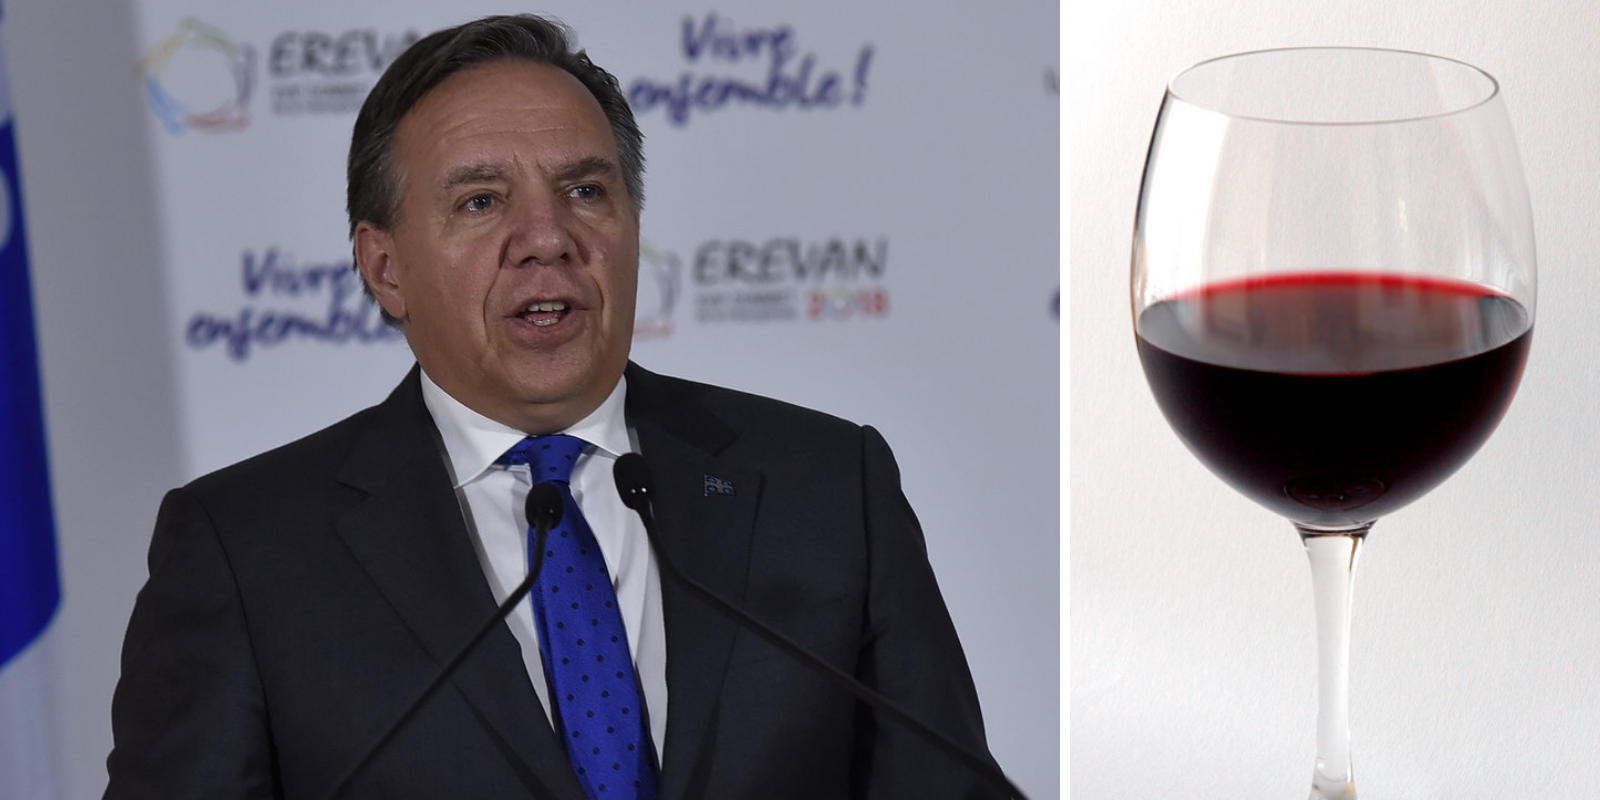 'A GLASS OF WINE': Quebec premier offers stress relief advice for those in quarantine